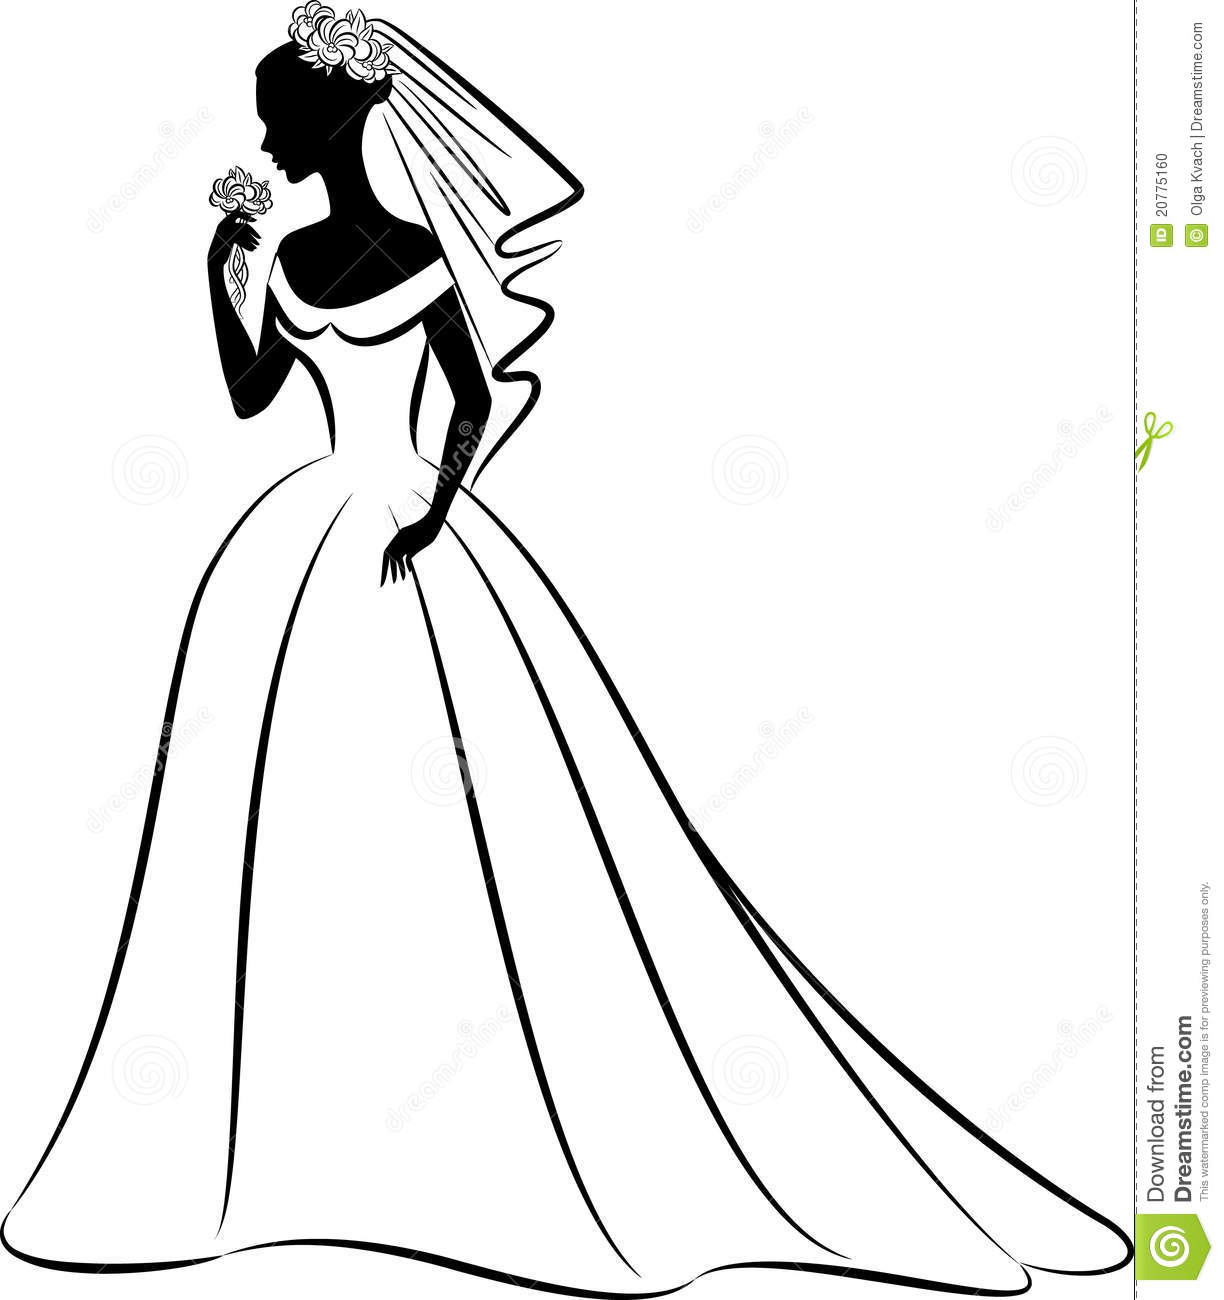 Wedding Gown Clip Art: Bridesmaid Dress Silhouette Clip Art